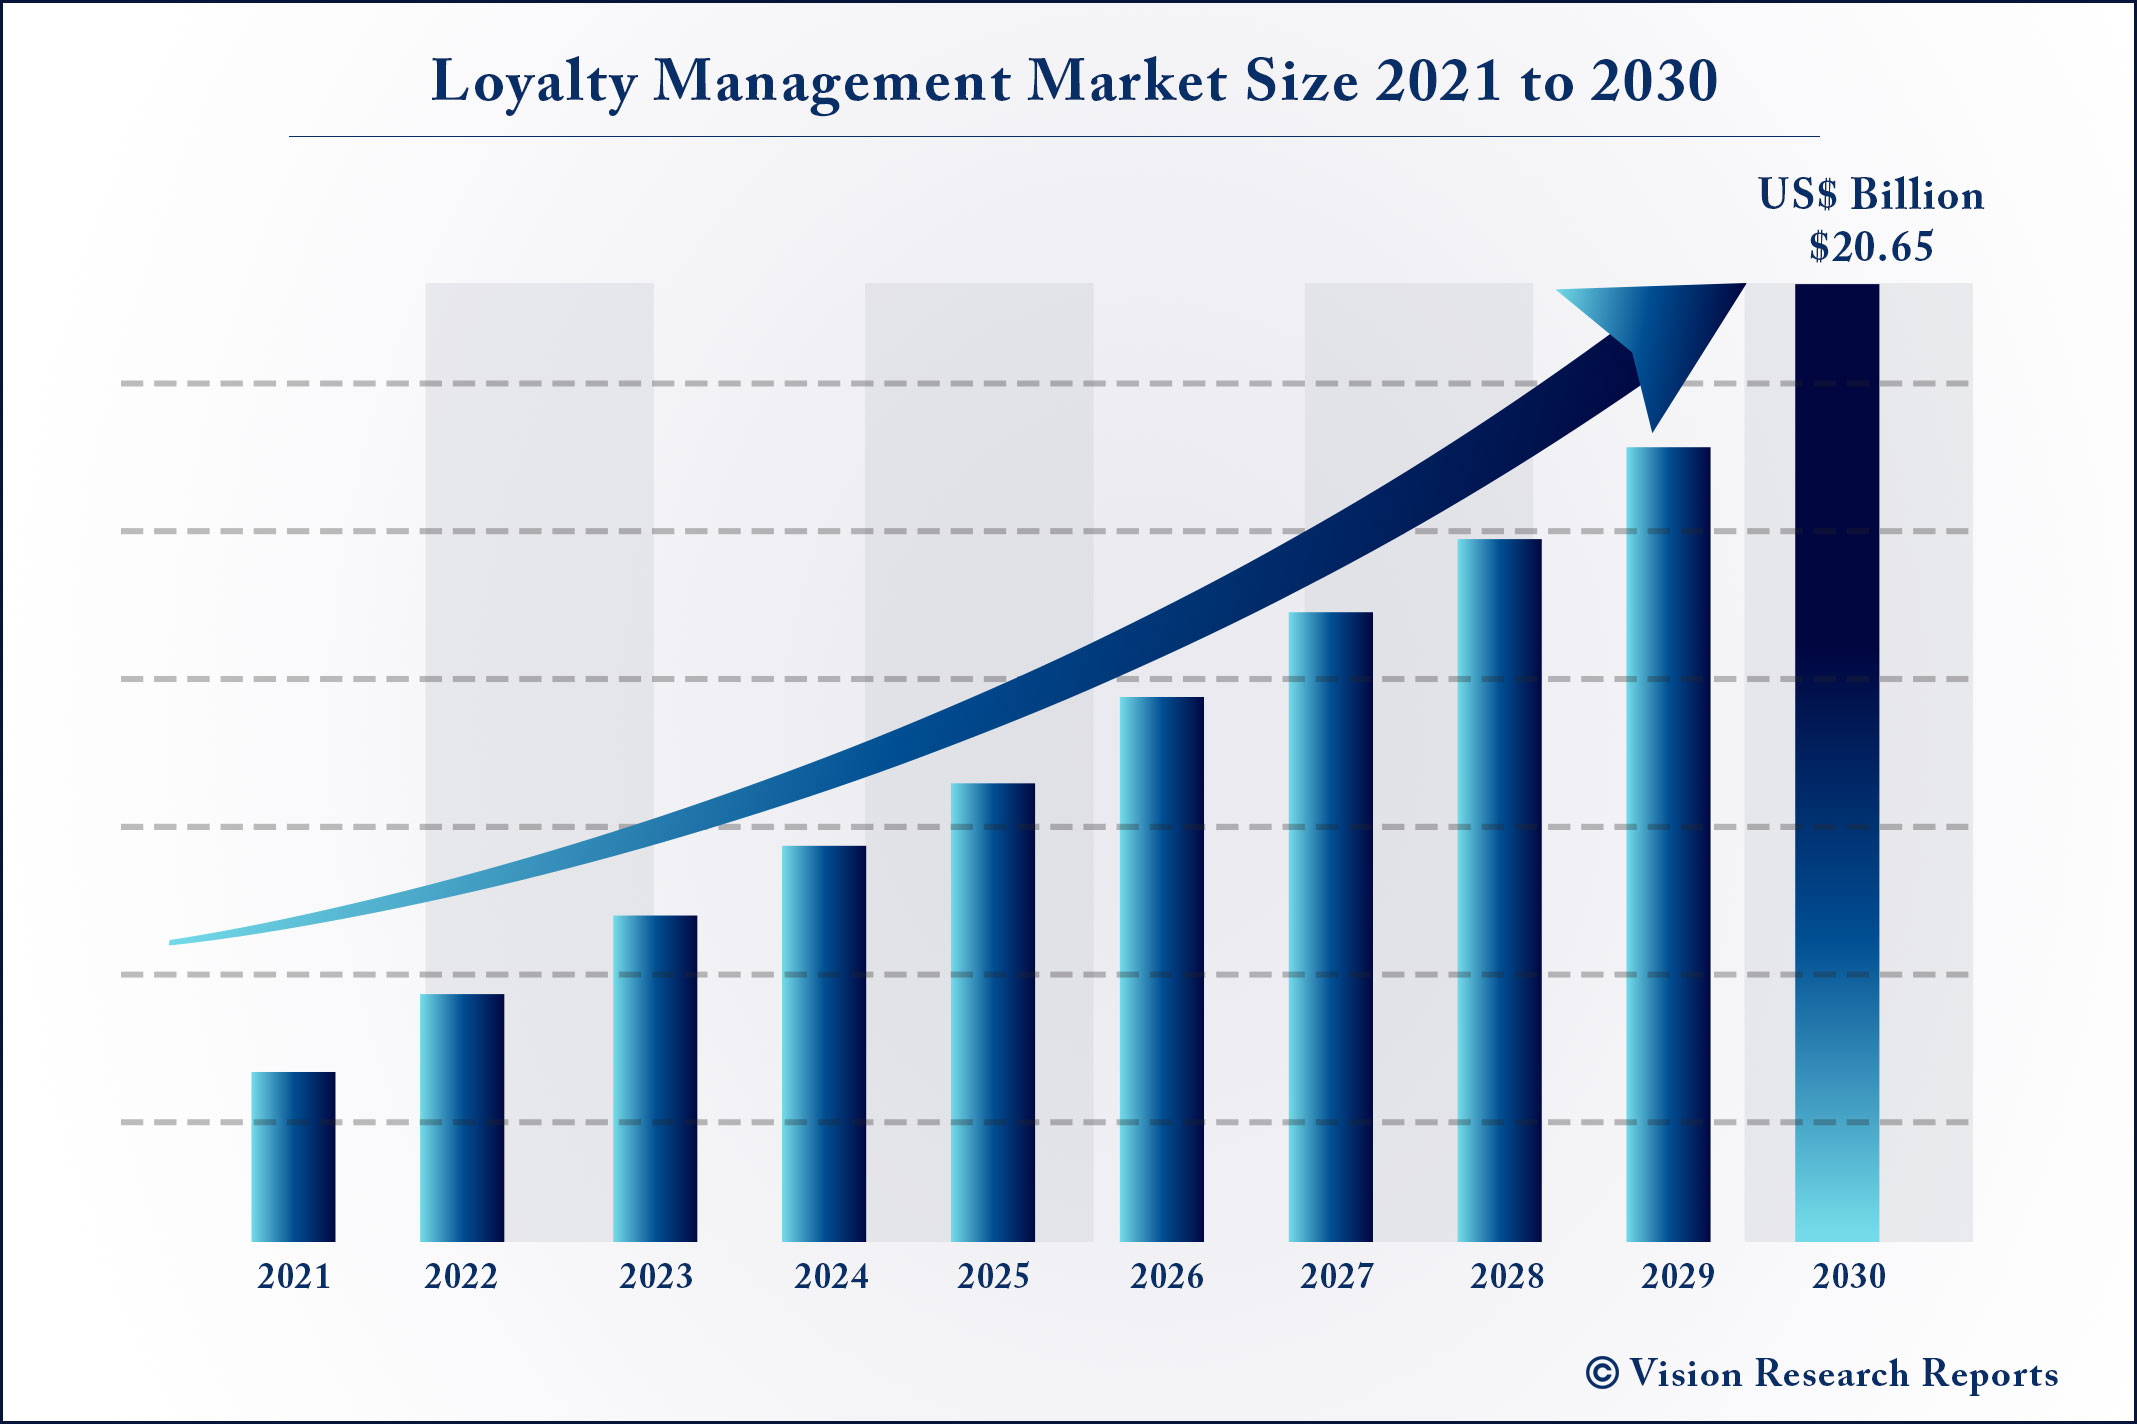 Loyalty Management Market Size 2021 to 2030